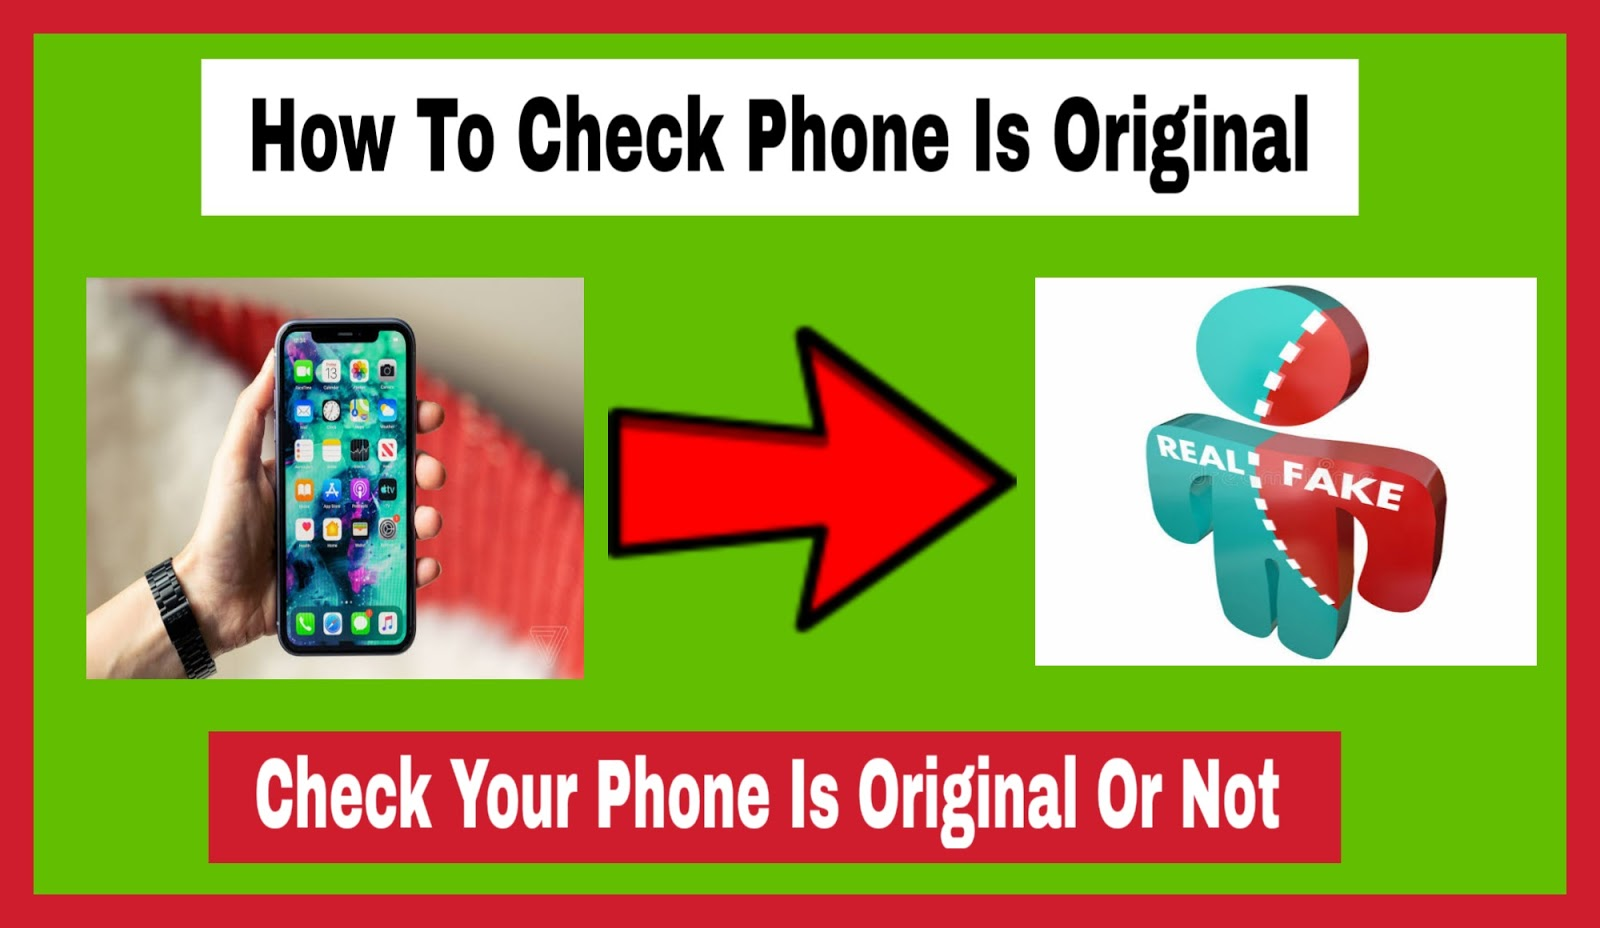 How to Check Phone Is Original